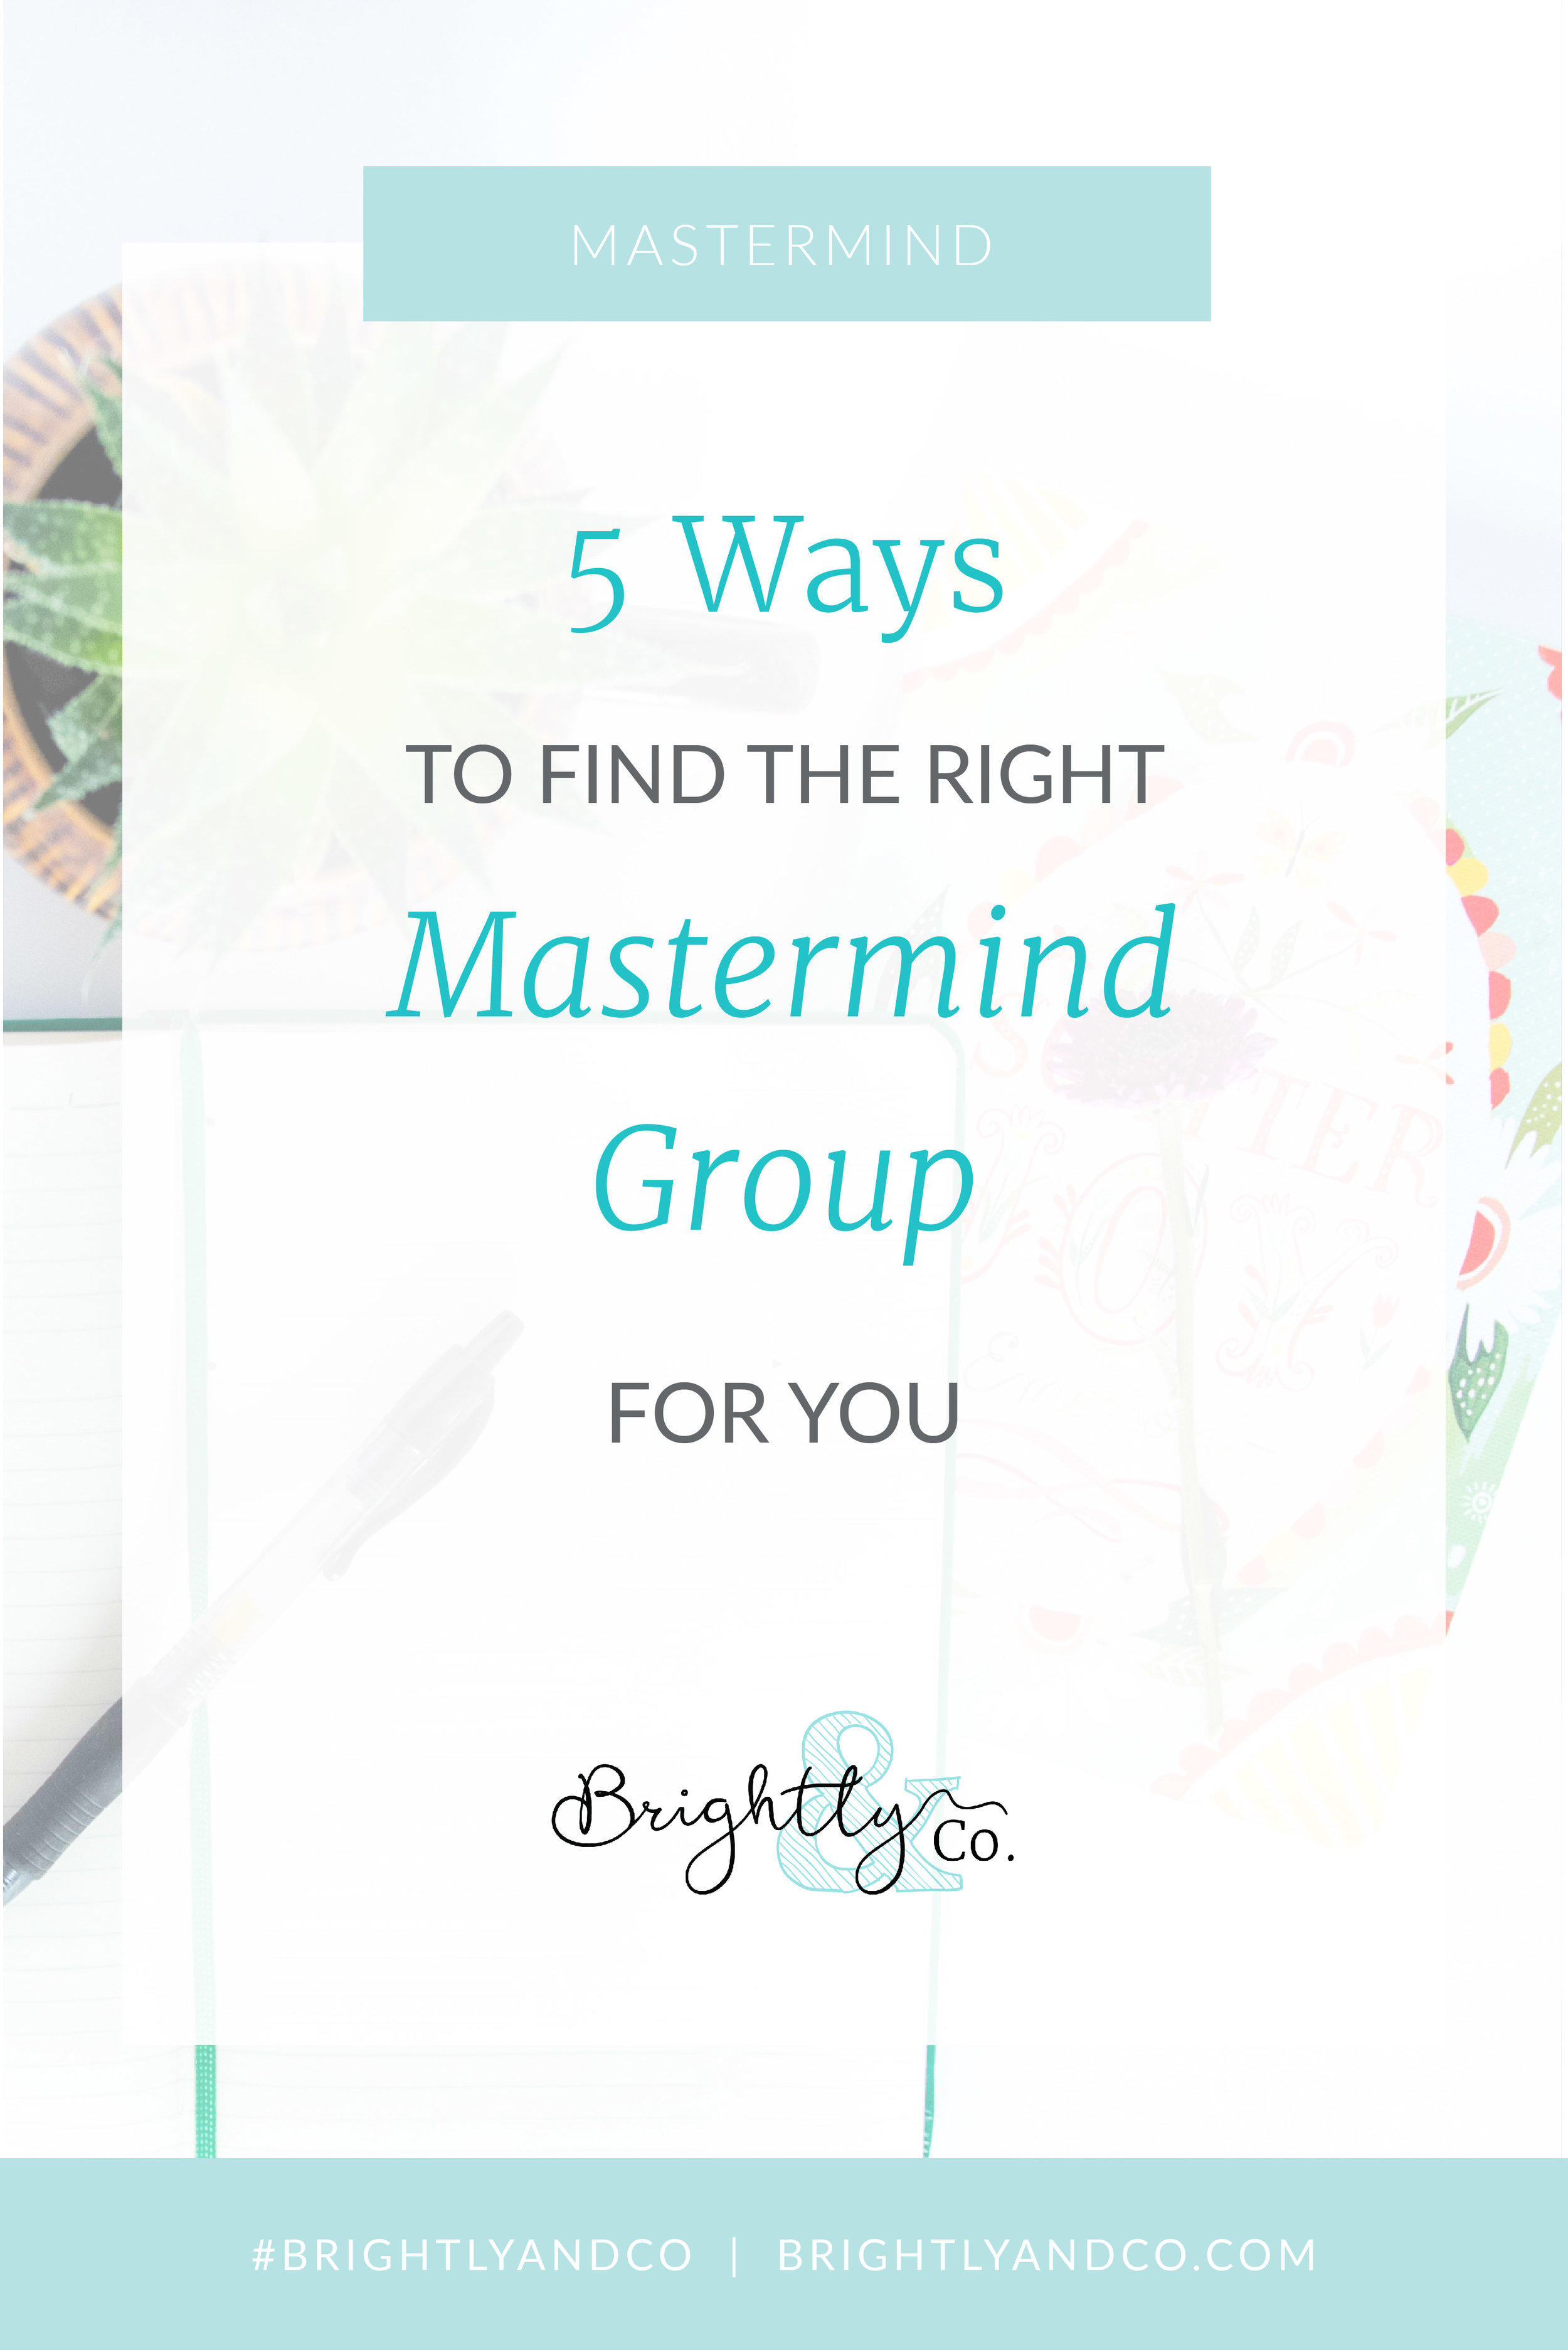 5 ways to find the right Mastermind group for you in 2018_Pinterest Graphic-02.jpg